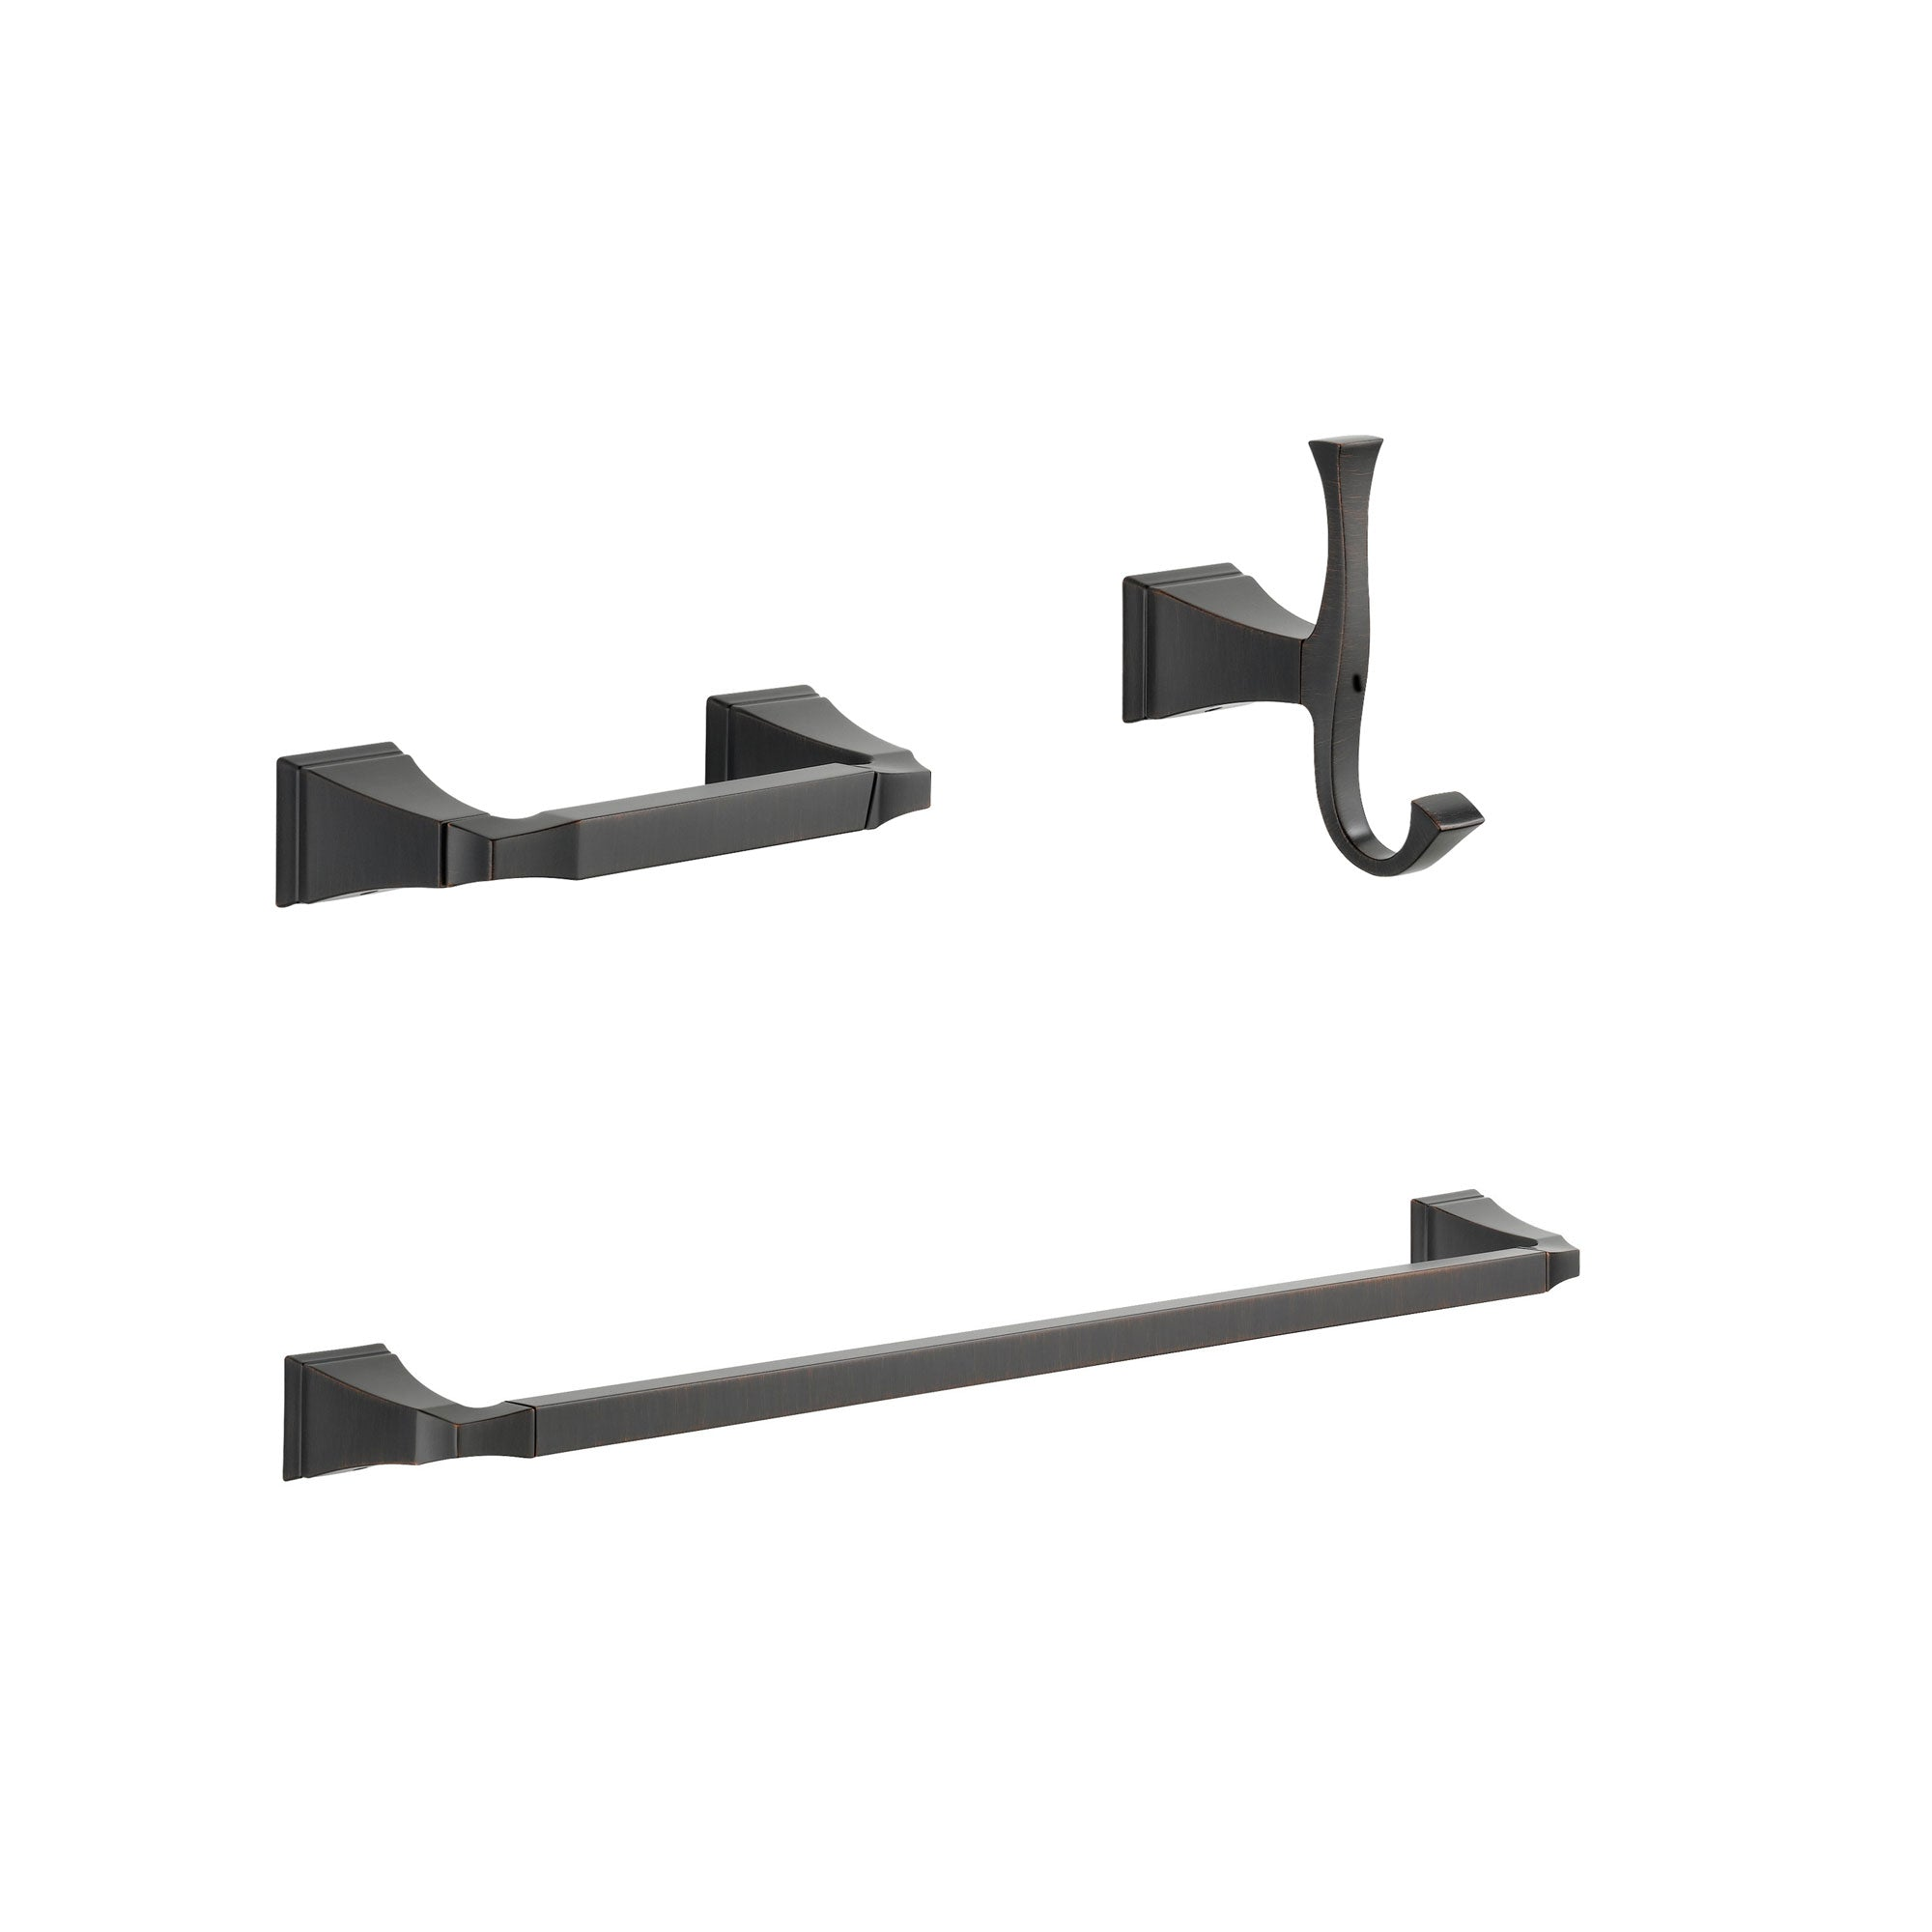 "Delta Dryden Venetian Bronze BASICS Bathroom Accessory Set Includes: 24"" Towel Bar, Toilet Paper Holder, and Robe Hook D10043AP"